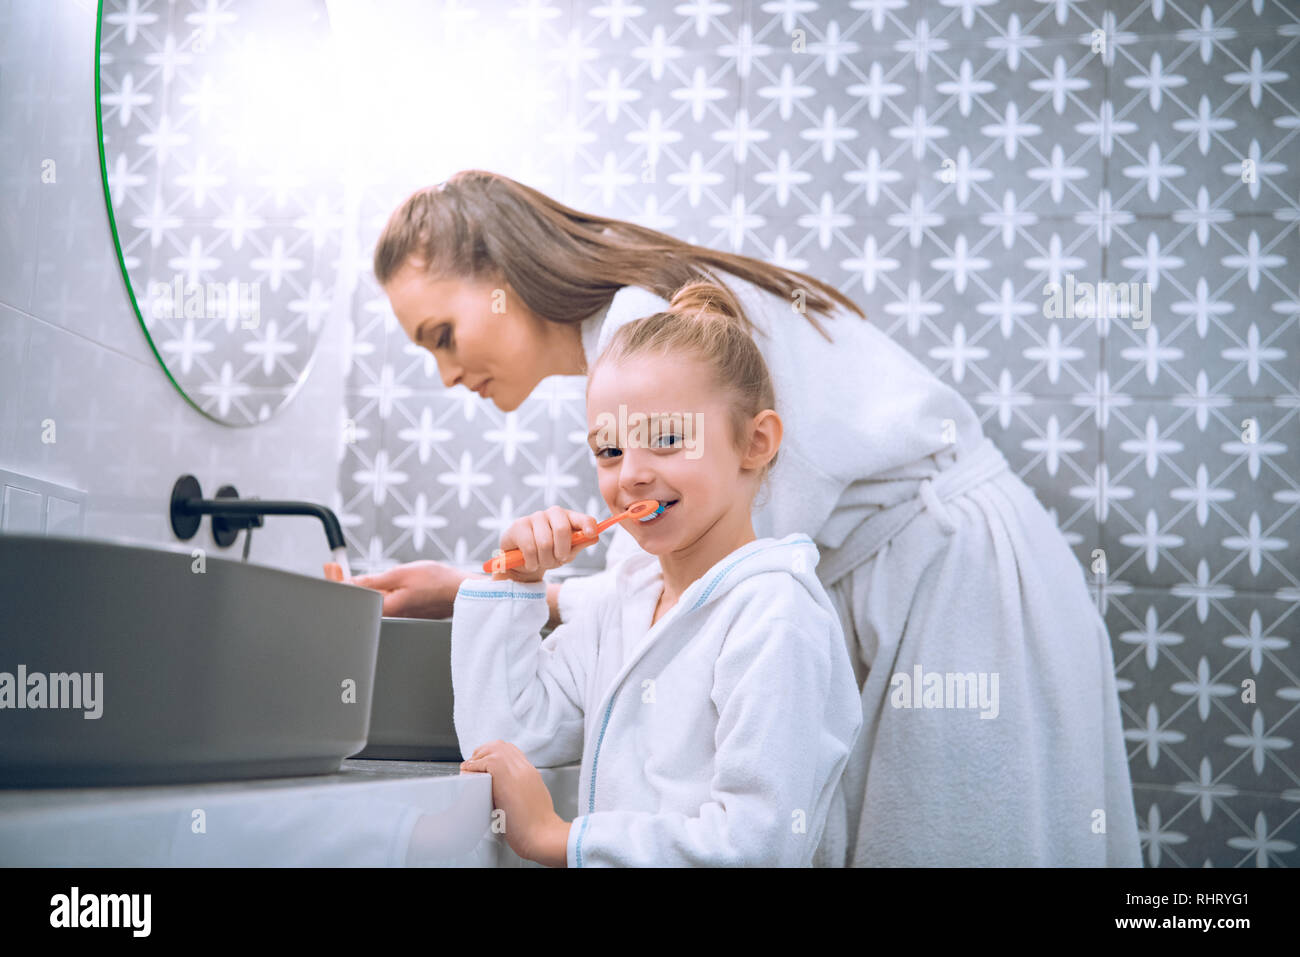 a3e6bbf6c1 cute kid brushing teeth near mother in bath robe Stock Photo ...